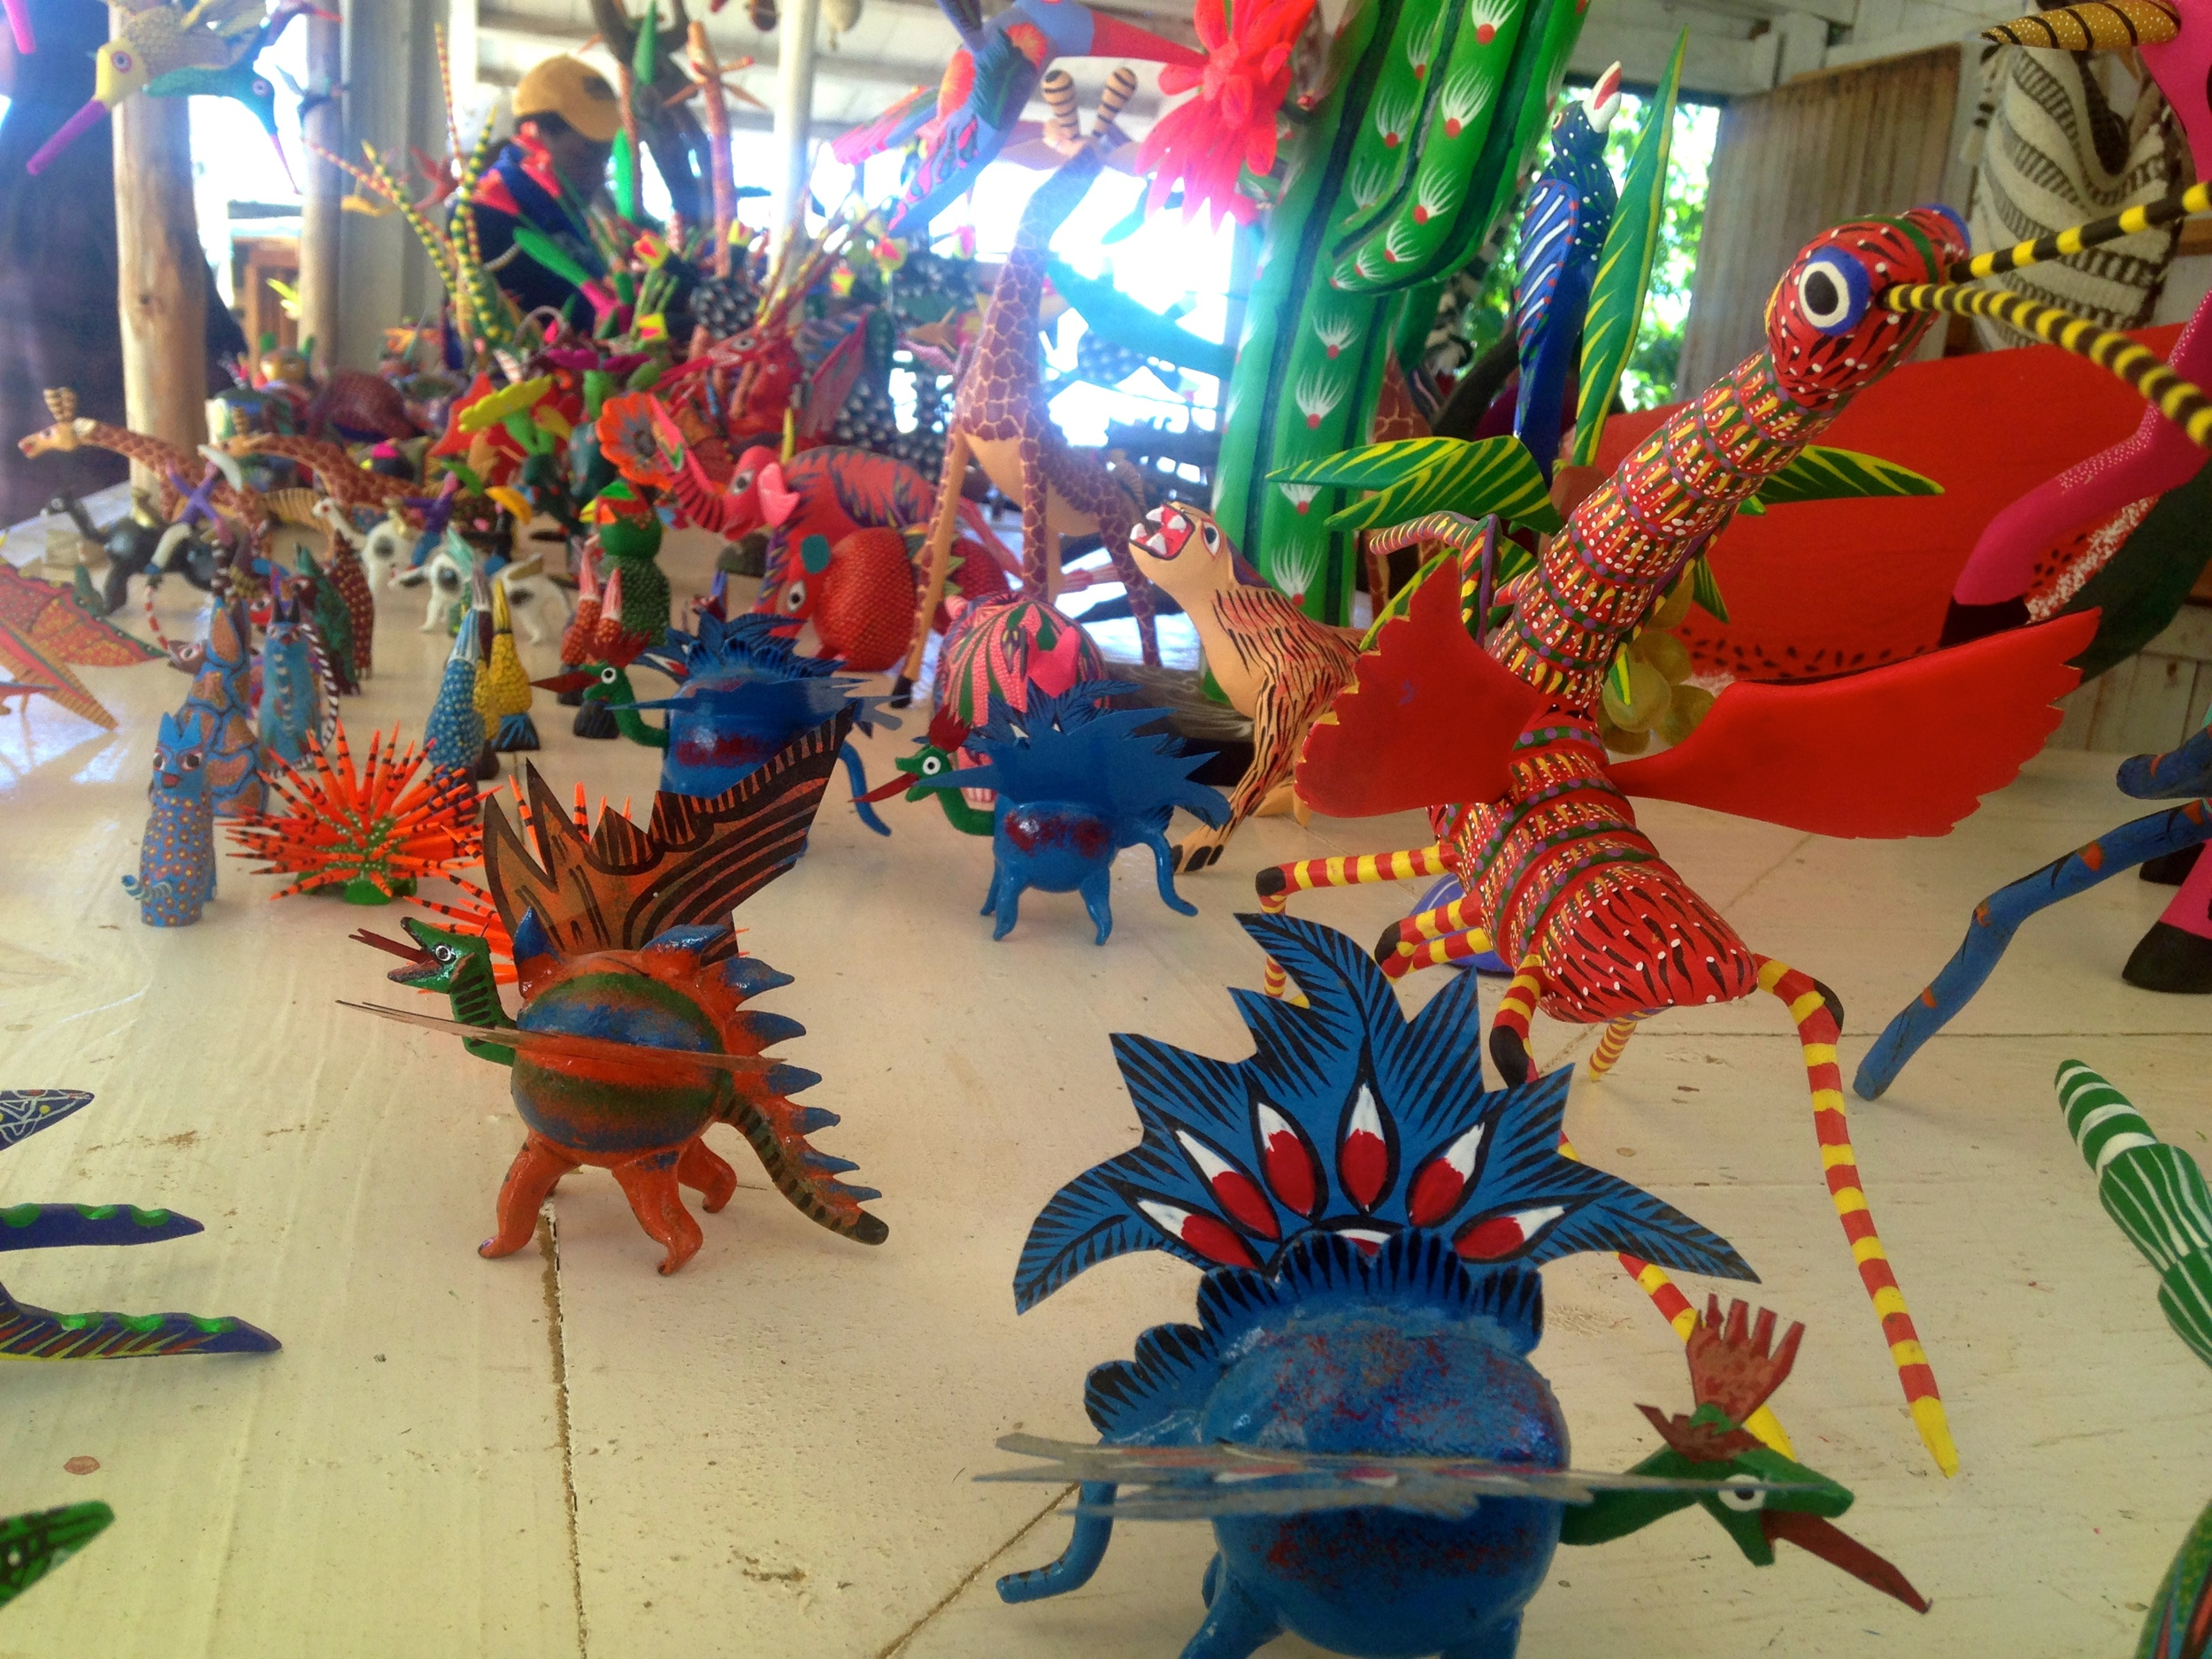 Alebrijes, or brightly colored folk art sculptures made from wood found in the mountains. One artist said that the shape of the wood determines the creatures he produces.